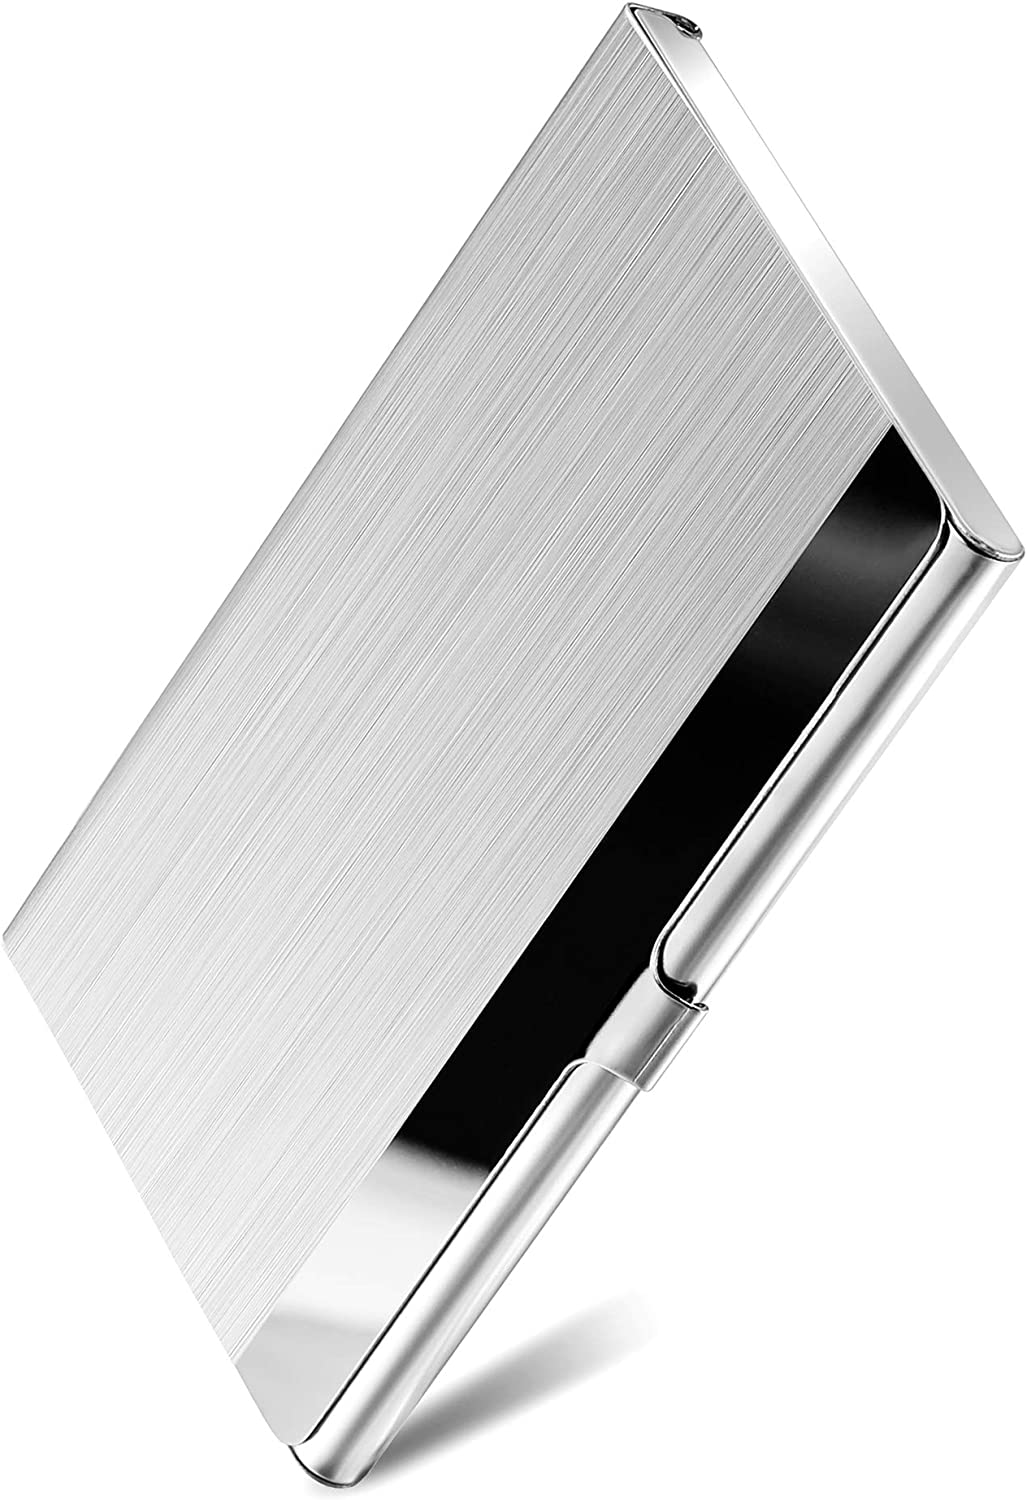 MaxGear Metal Business Card Holder for Men & Women, Pocket Business Card Case Slim Business Card Wallet Business Card Holders Name Card Holder, 3.7 x 2.3 x 0.3 inches, Stainless Steel, Silver Mirror : Office Products